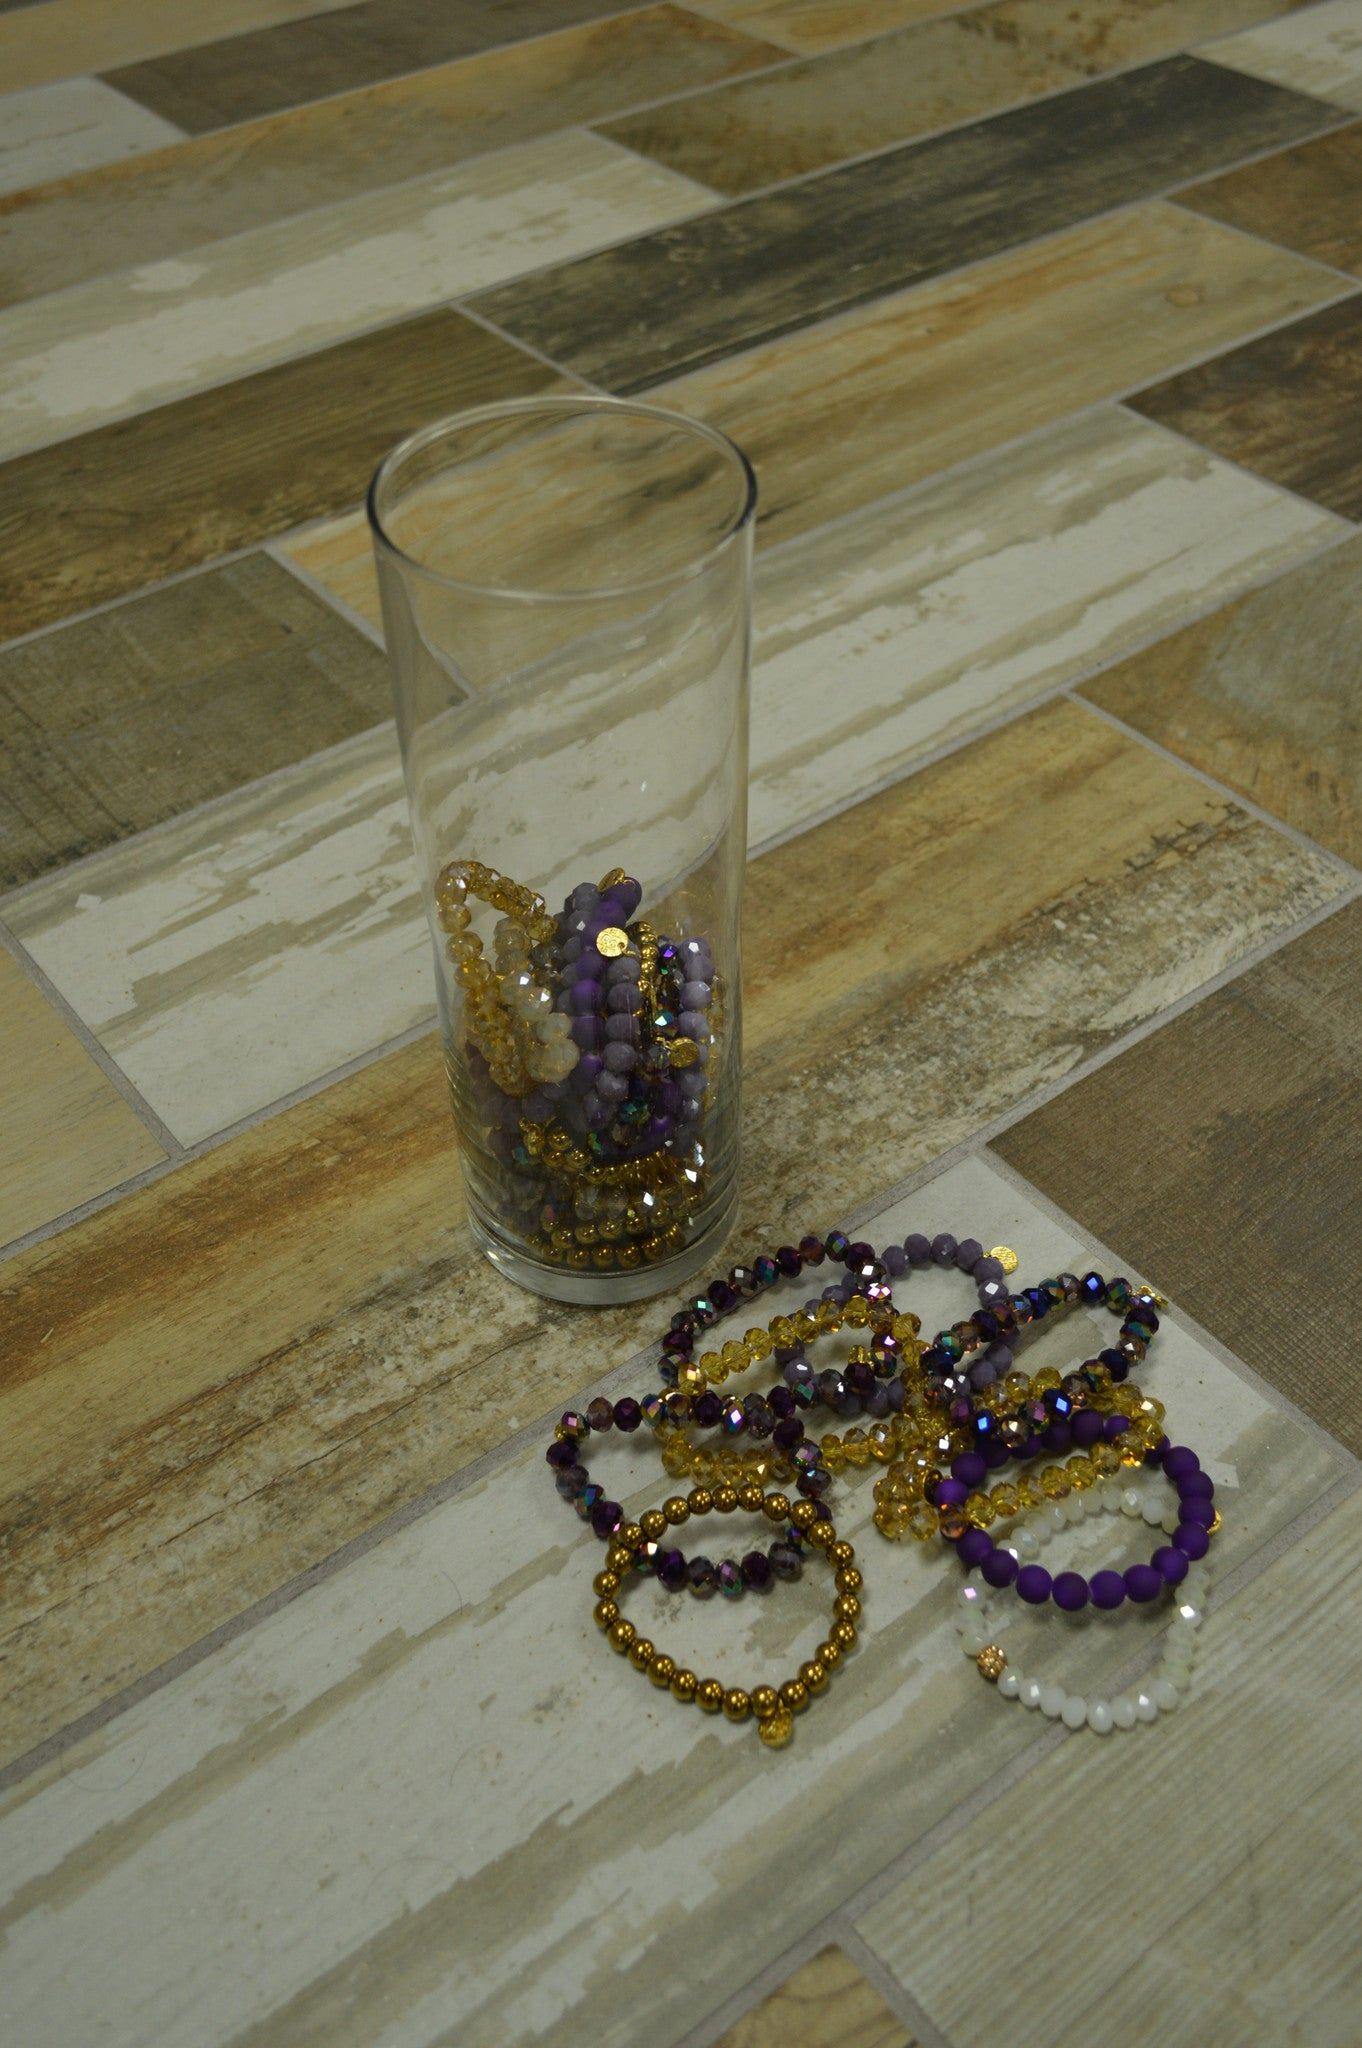 Erimish Bracelets in Jars